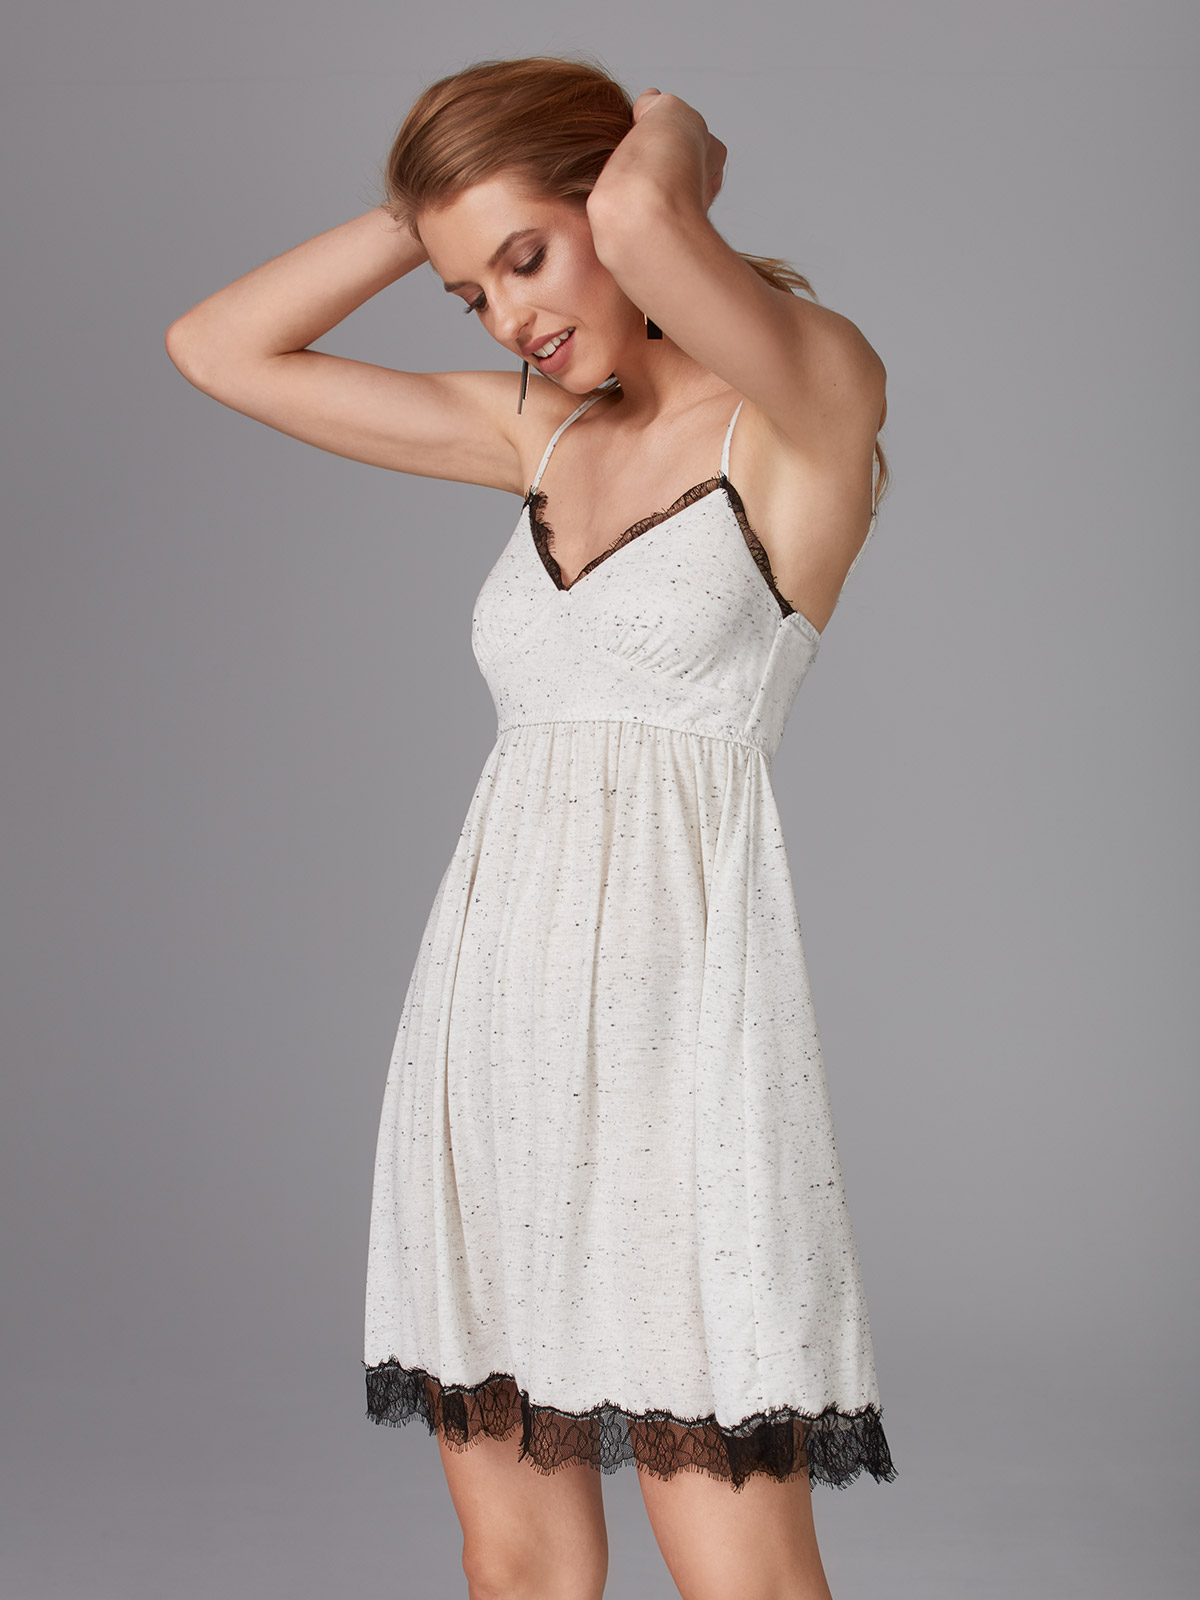 Fairy Tale OZ028 Chemise<br />01 Ivory, 02 Black, 59 Stracciatella, 64 Dusty Pink